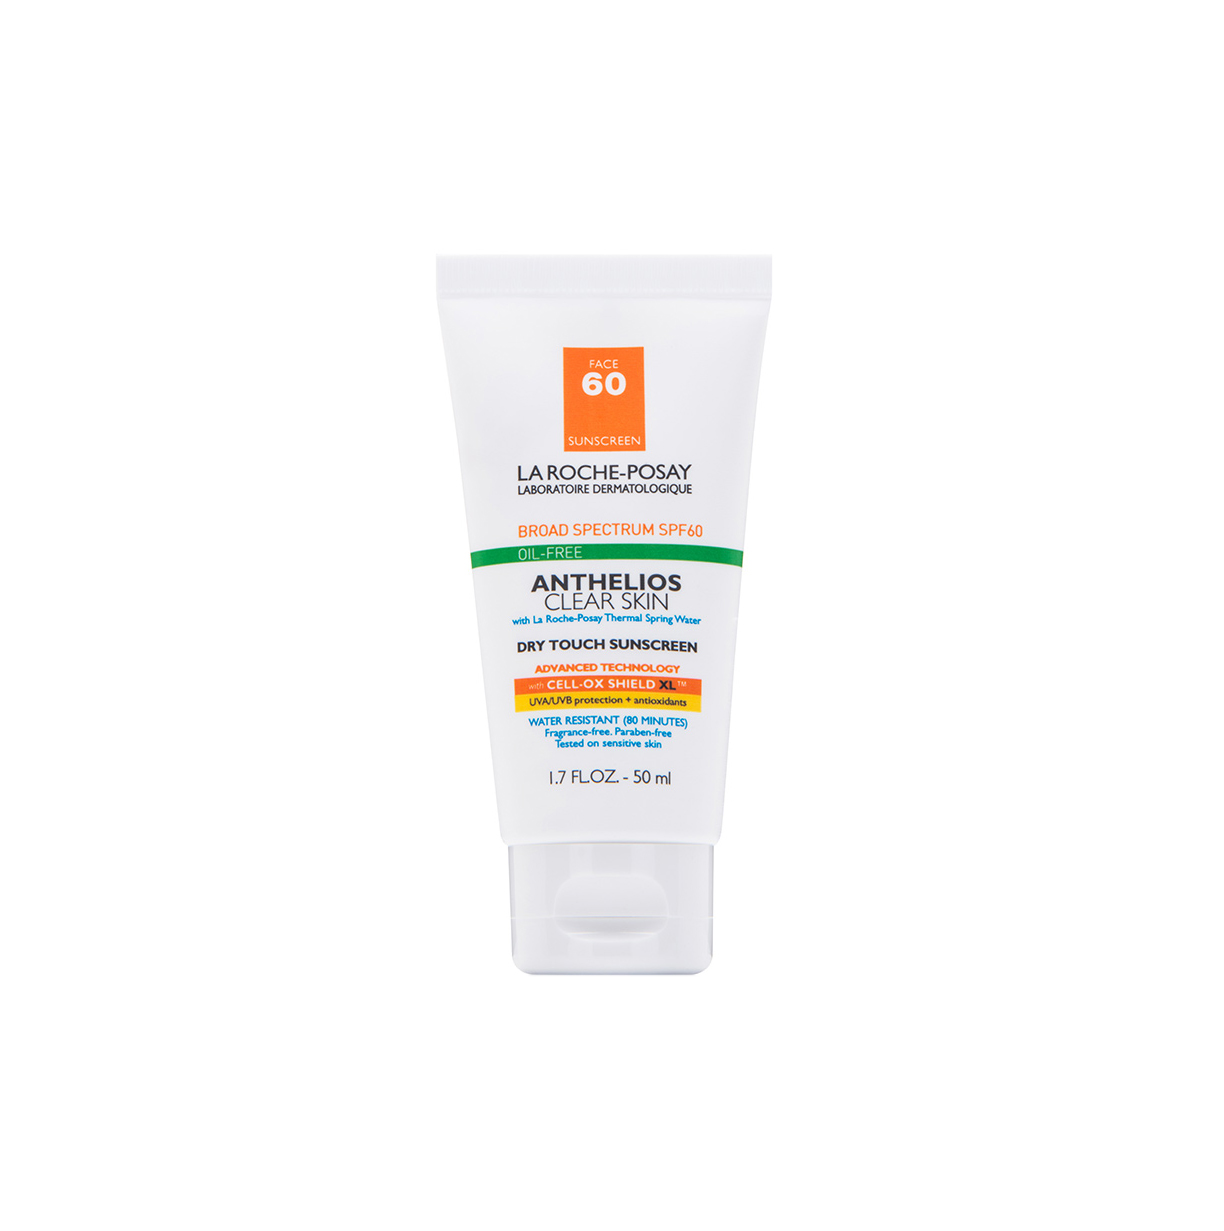 La Roche-Posay Anthelios 60 ClearSkin Dry Touch Sunscreen